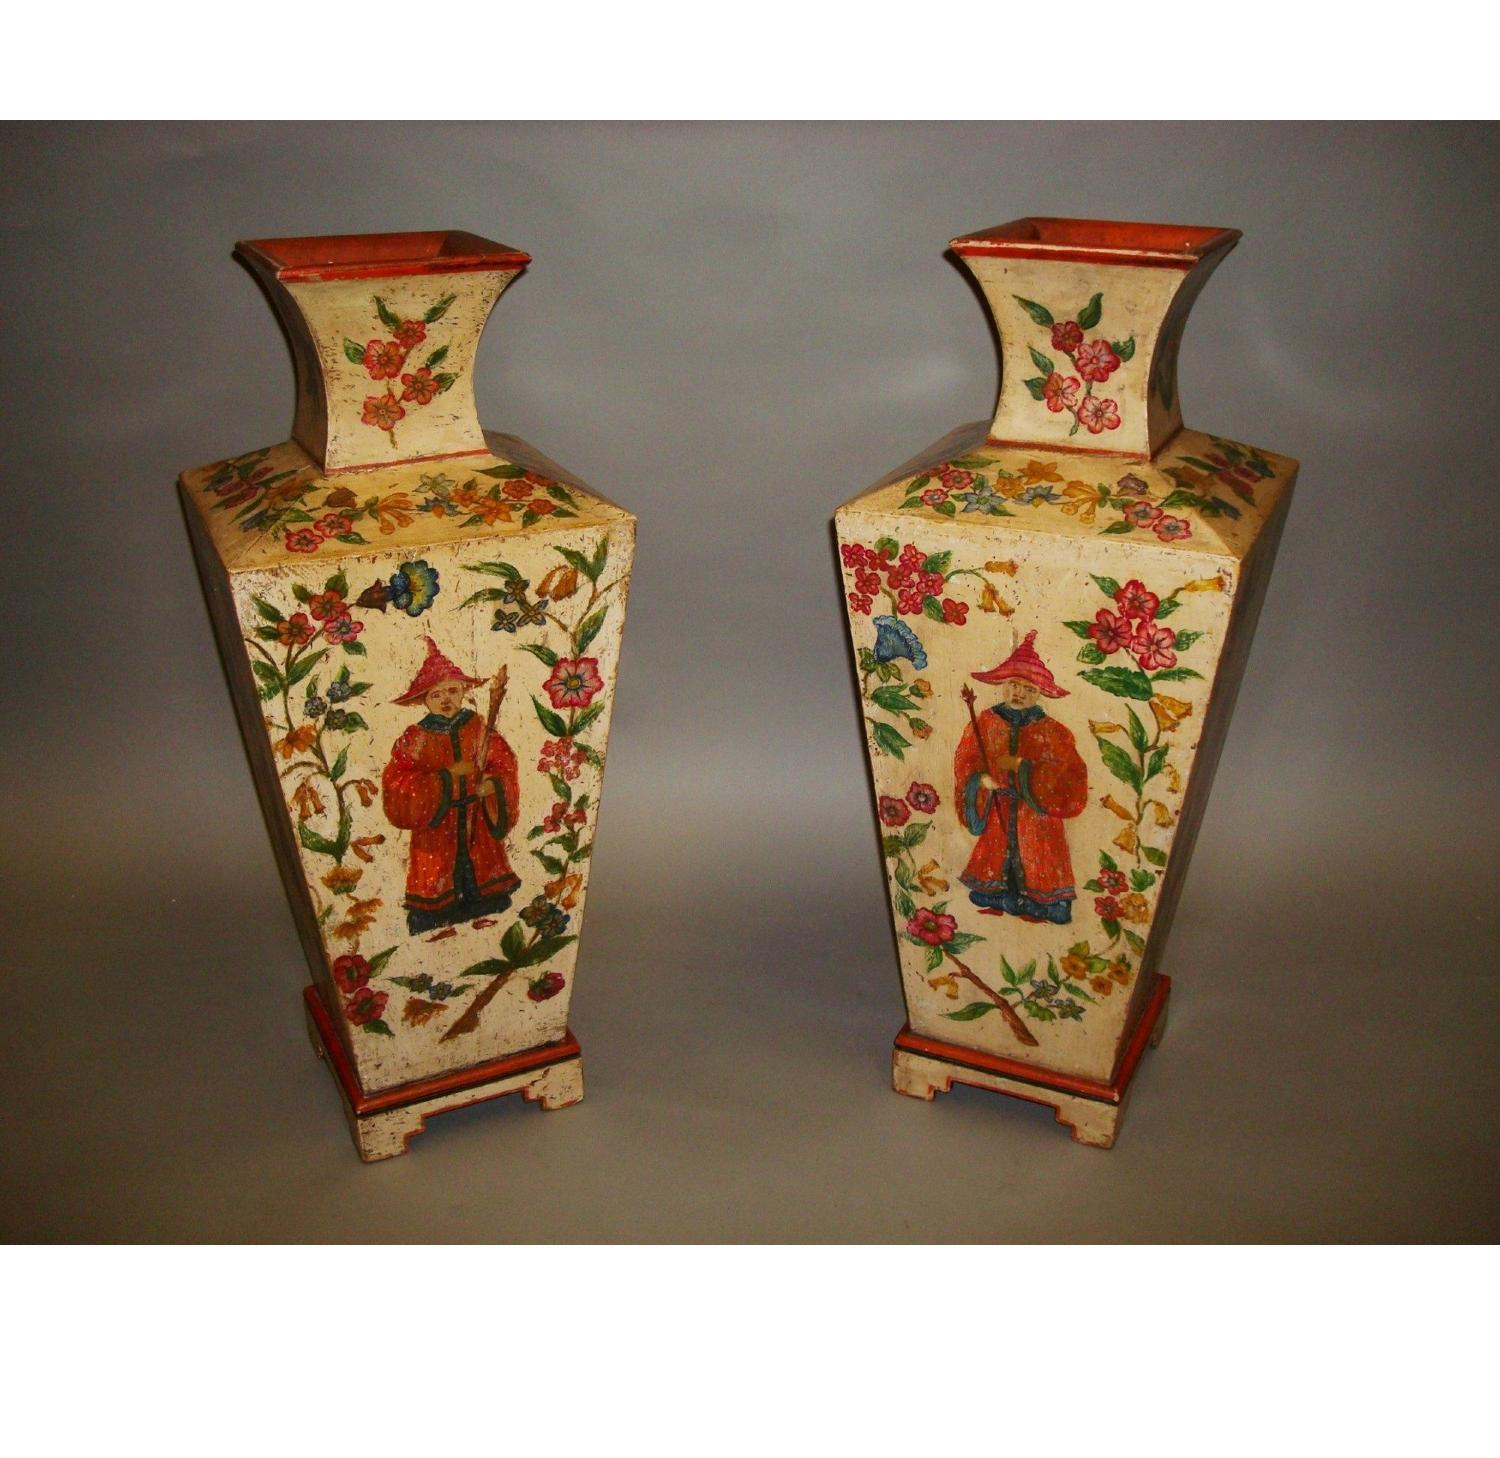 C20th decorative pair of large vases